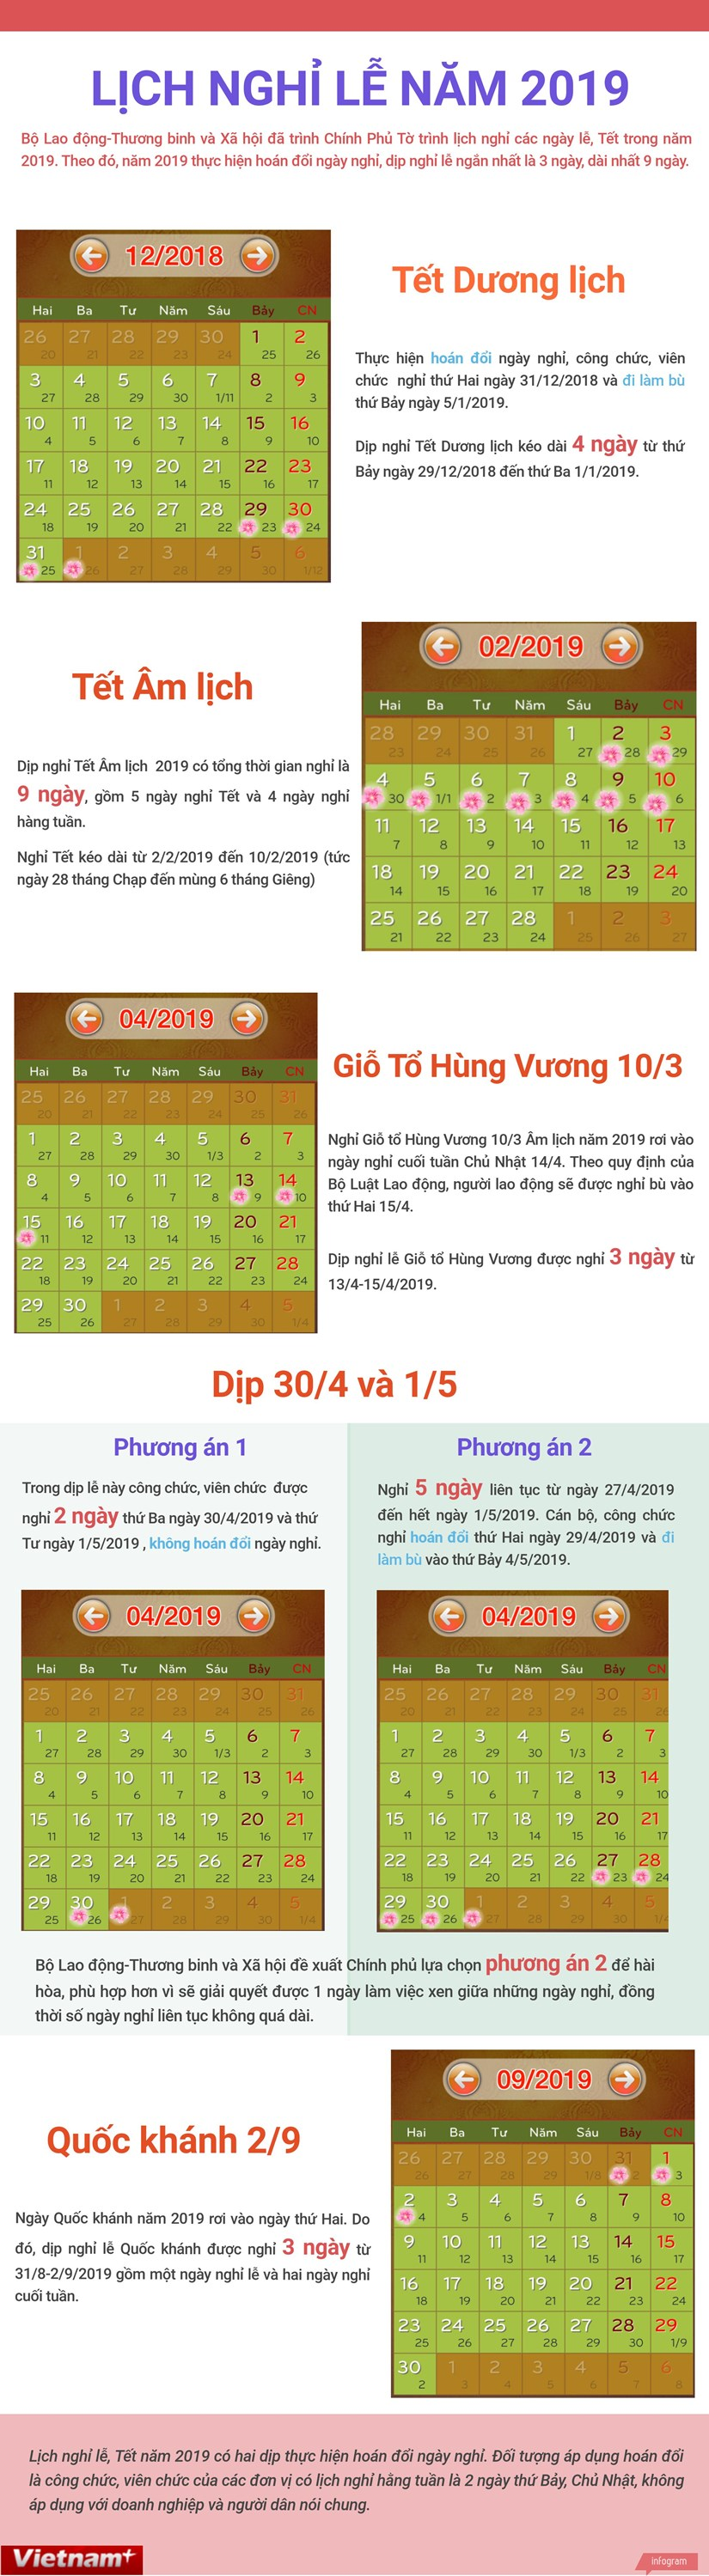 [Infographic] De xuat lich nghi cac dip le Tet trong nam 2019 hinh anh 1